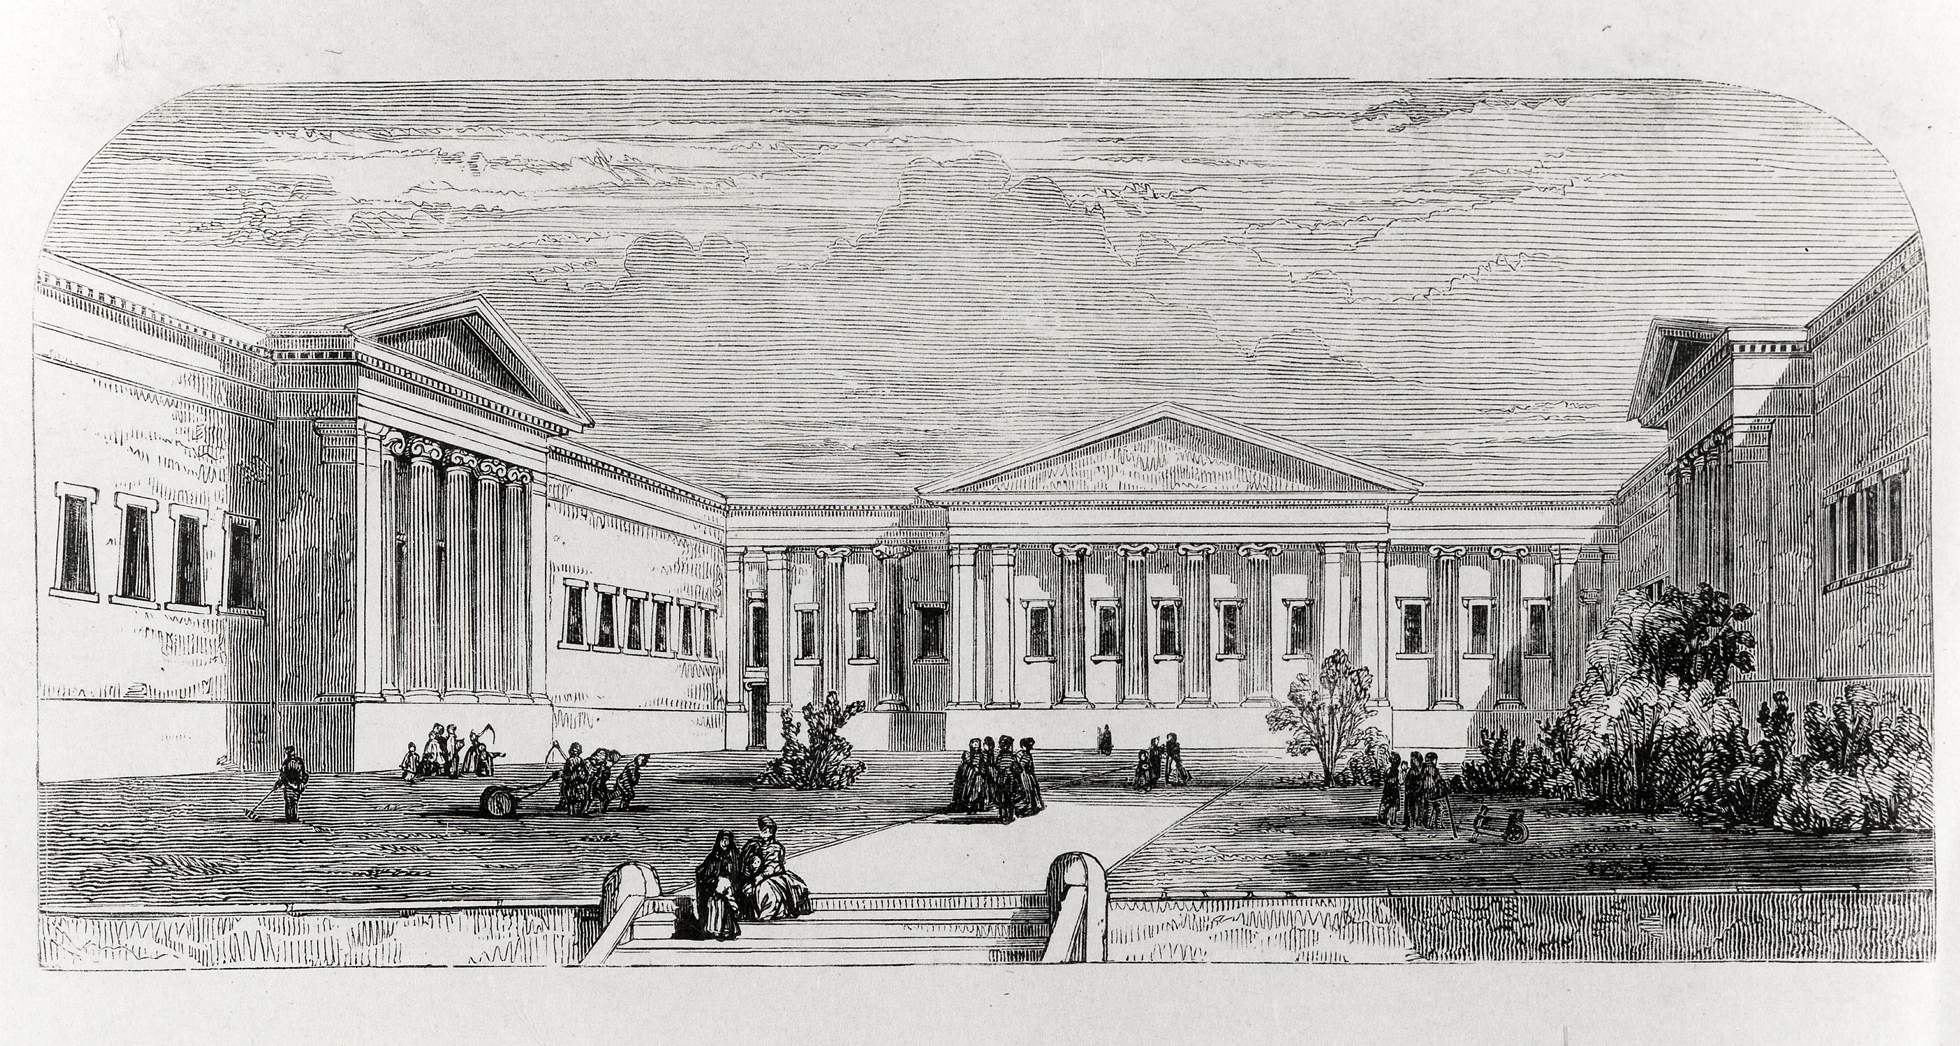 A black-and-white print showing a courtyard where the Great Court now stands, with people walking in long dresses and gardens with shrubs and trees between three of the facades of the Museum.